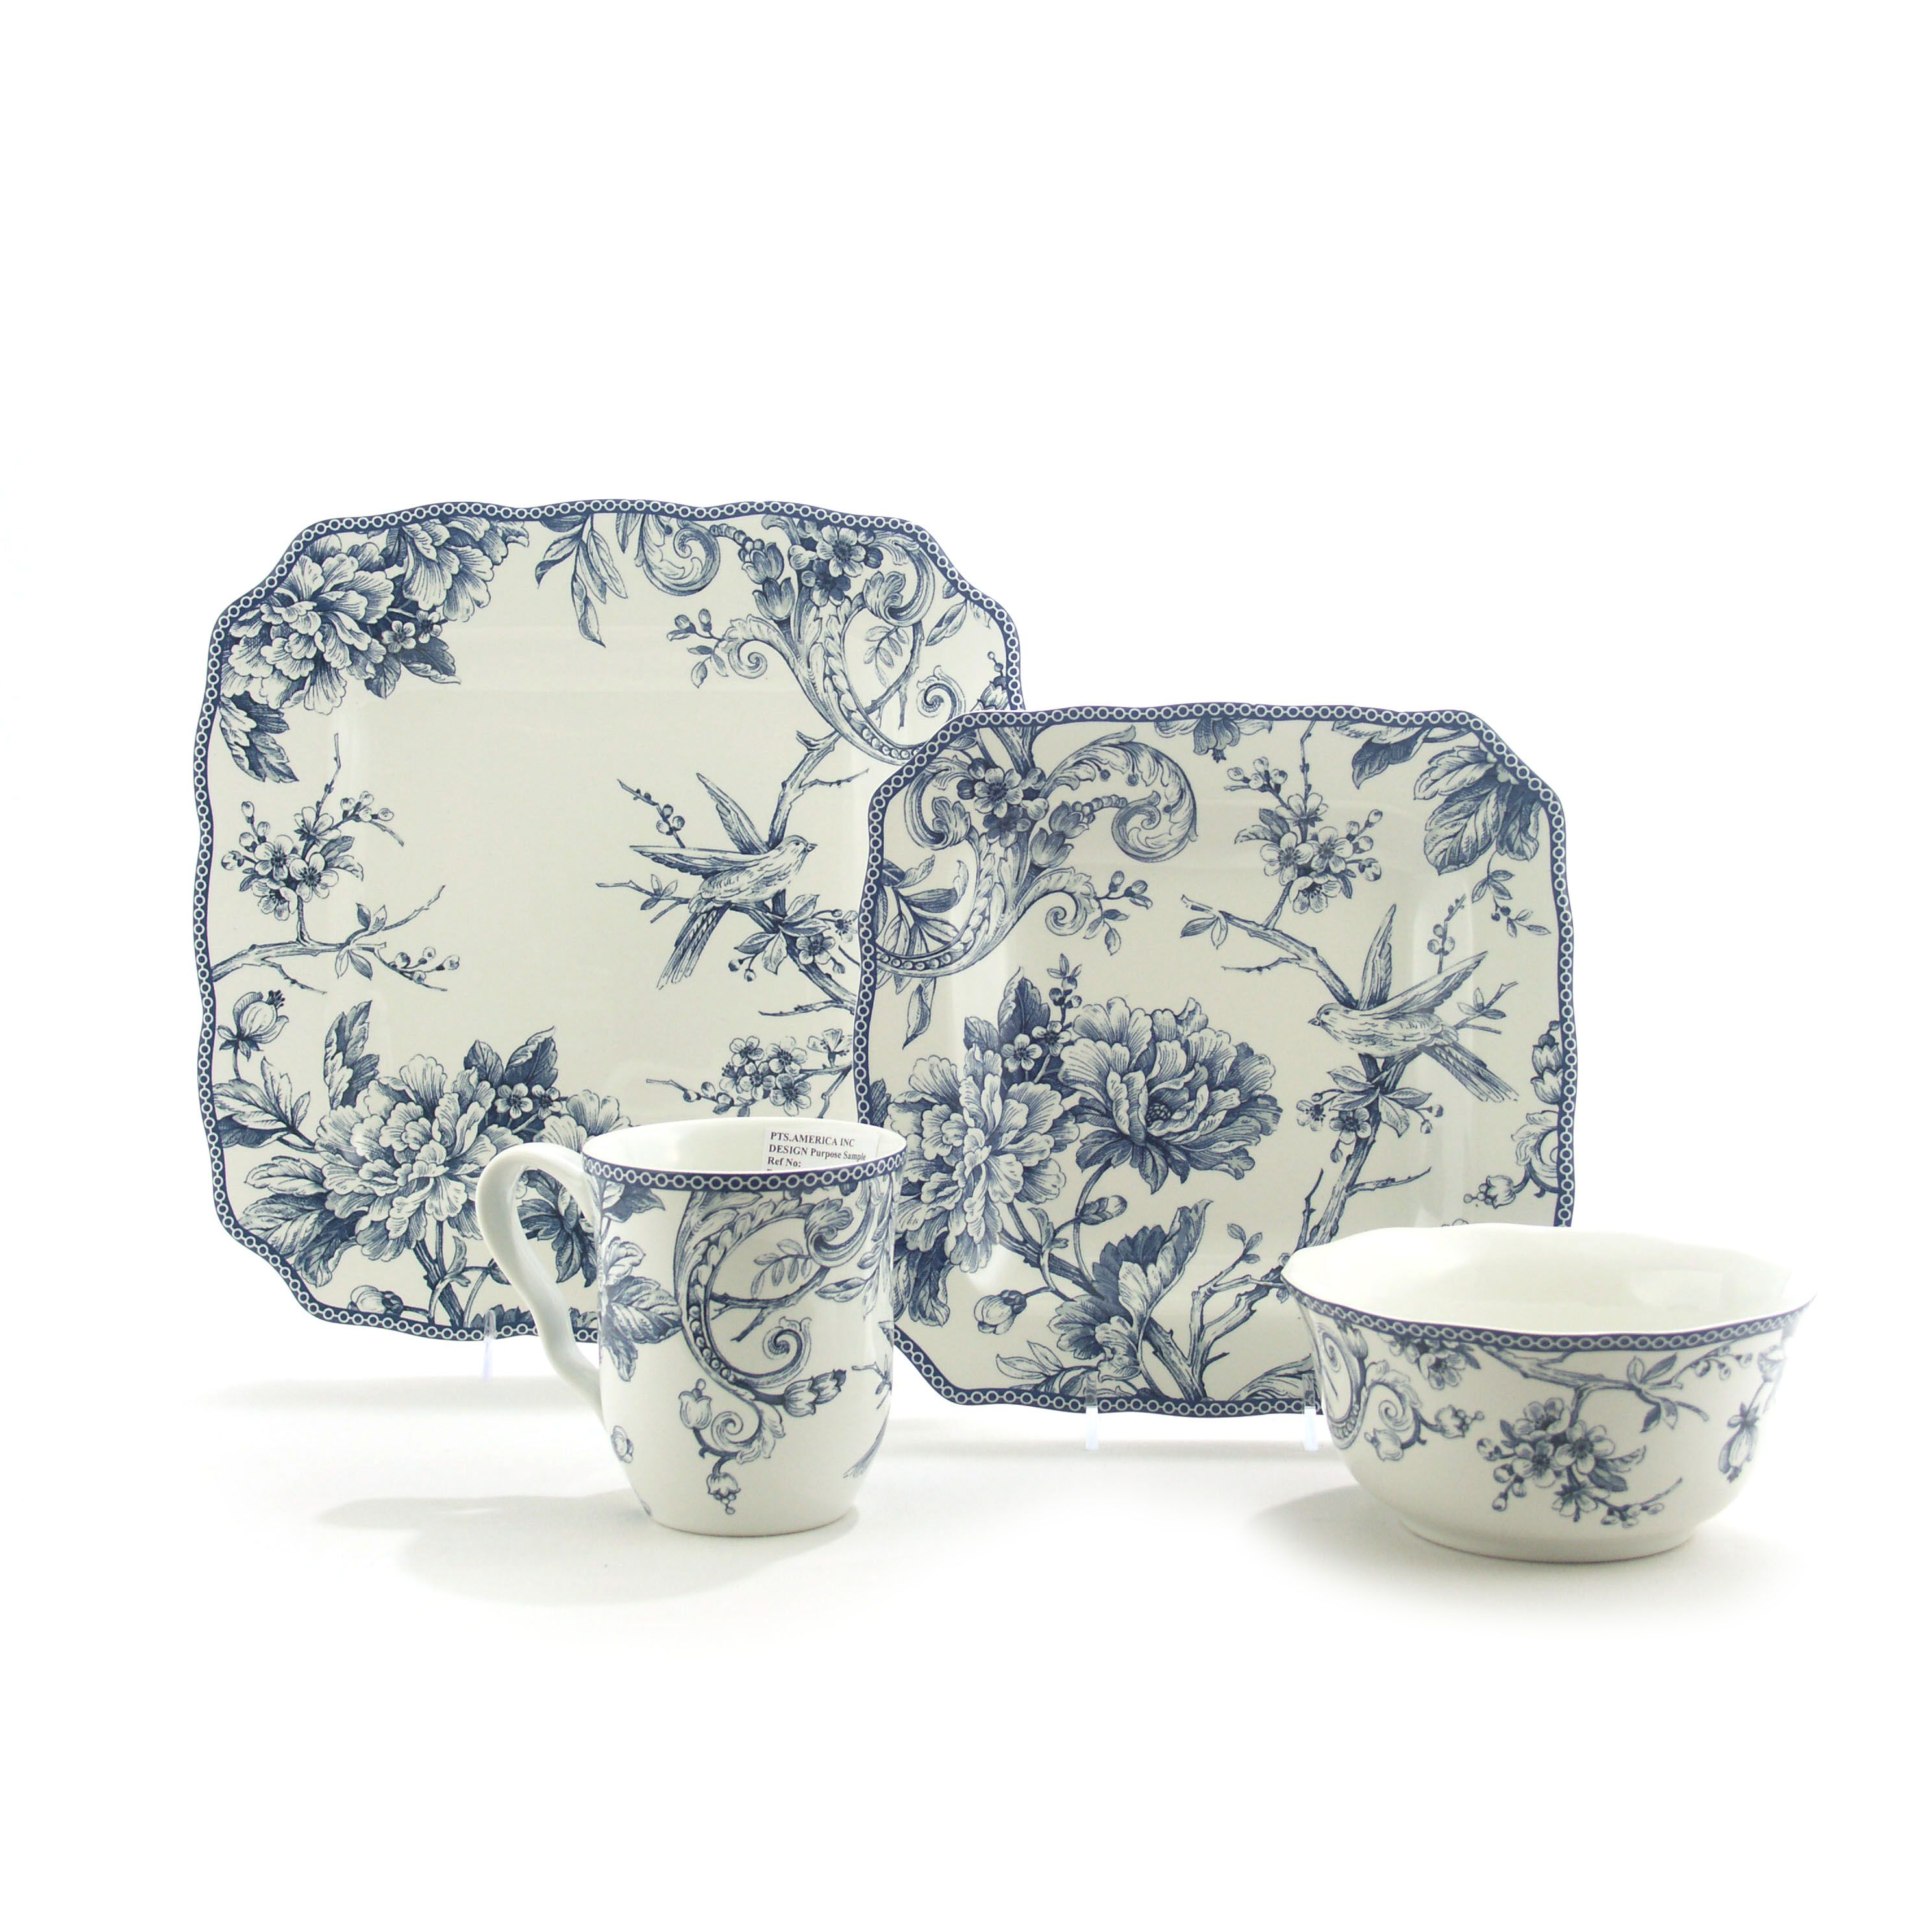 222 Fifth Green Adelaide 16-piece Dinnerware Set | Overstock.com Shopping - The Best Deals on Casual Dinnerware  sc 1 st  Pinterest & This 16-piece dinnerware set from 222 Fifth features a beautiful ...